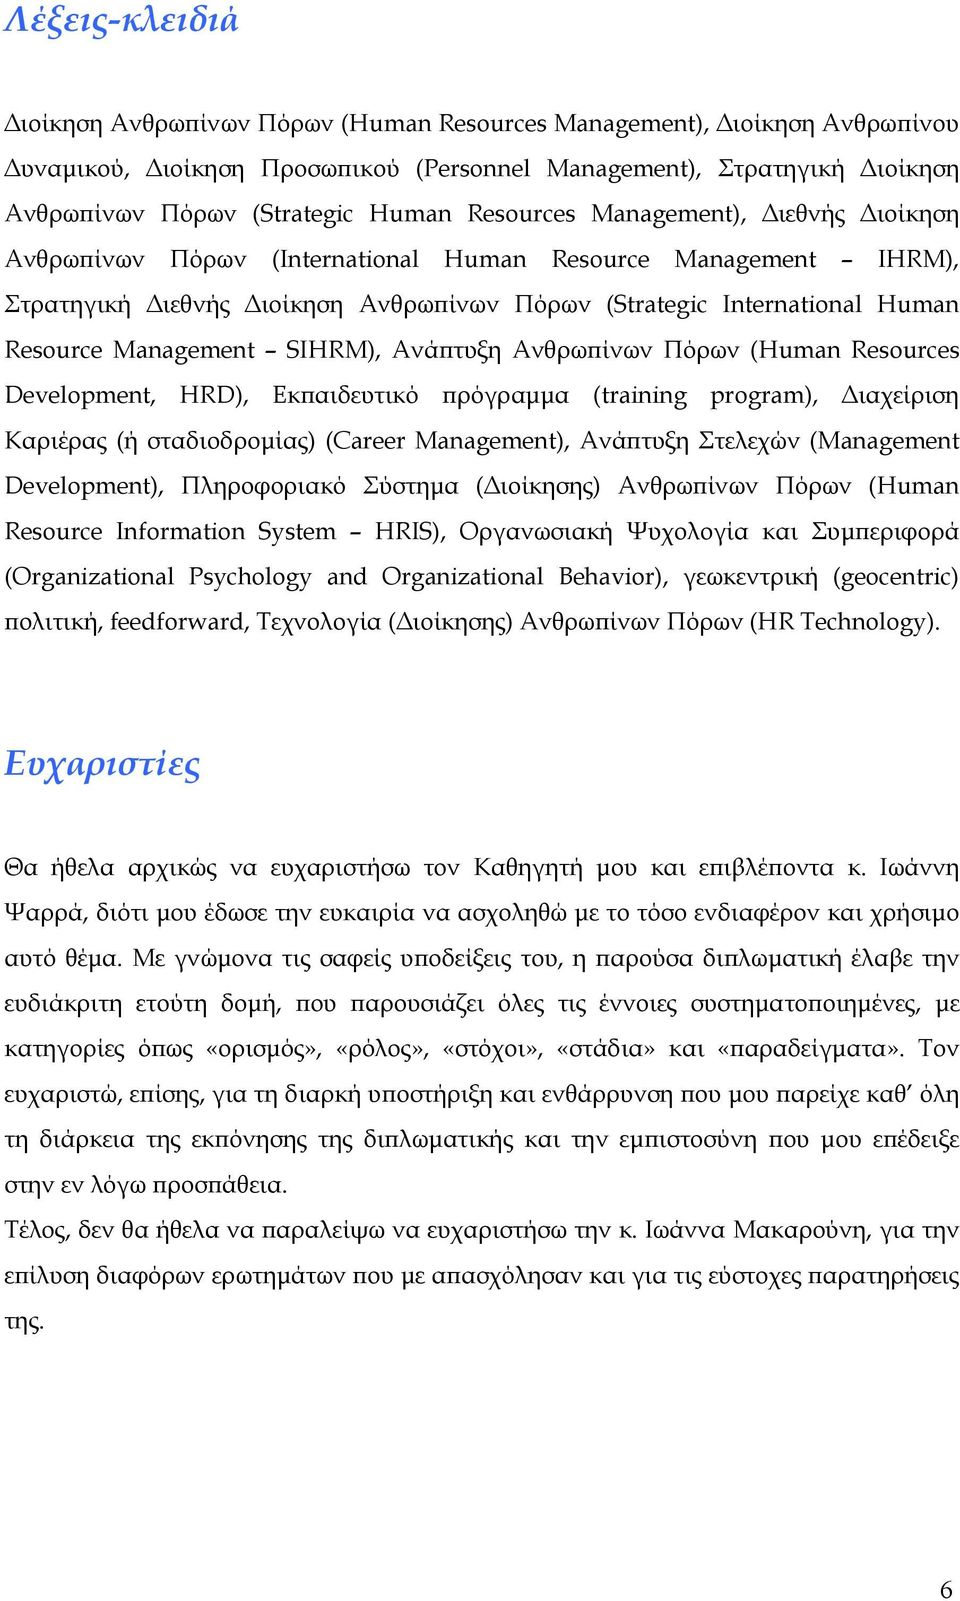 Management SIHRM), Ανάπτυξη Ανθρωπίνων Πόρων (Human Resources Development, HRD), Εκπαιδευτικό πρόγραμμα (training program), Διαχείριση Καριέρας (ή σταδιοδρομίας) (Career Management), Ανάπτυξη